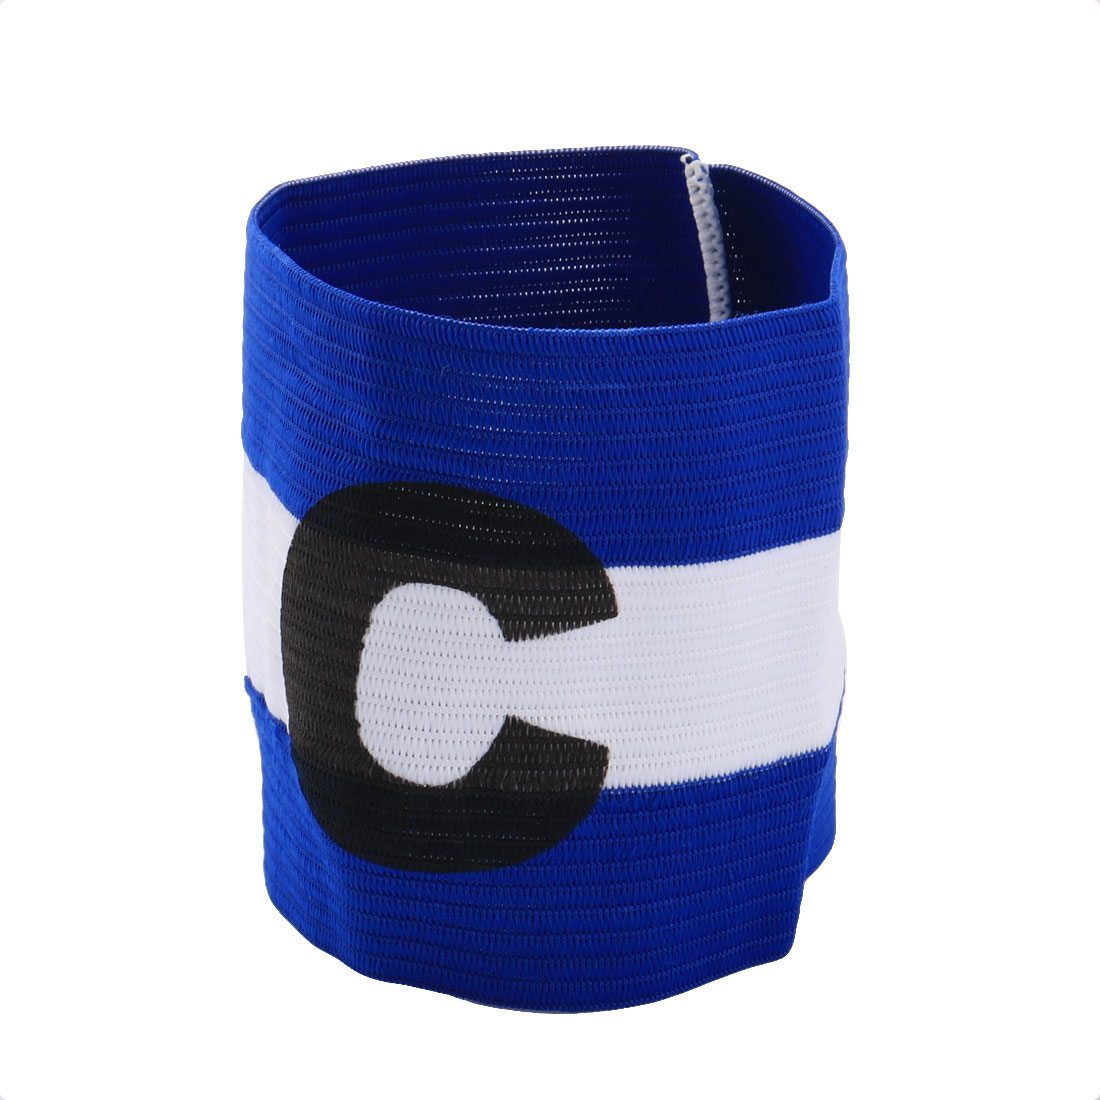 Stretchy C Print Team Soccer Basketball Sports Match Captain Armband Badge